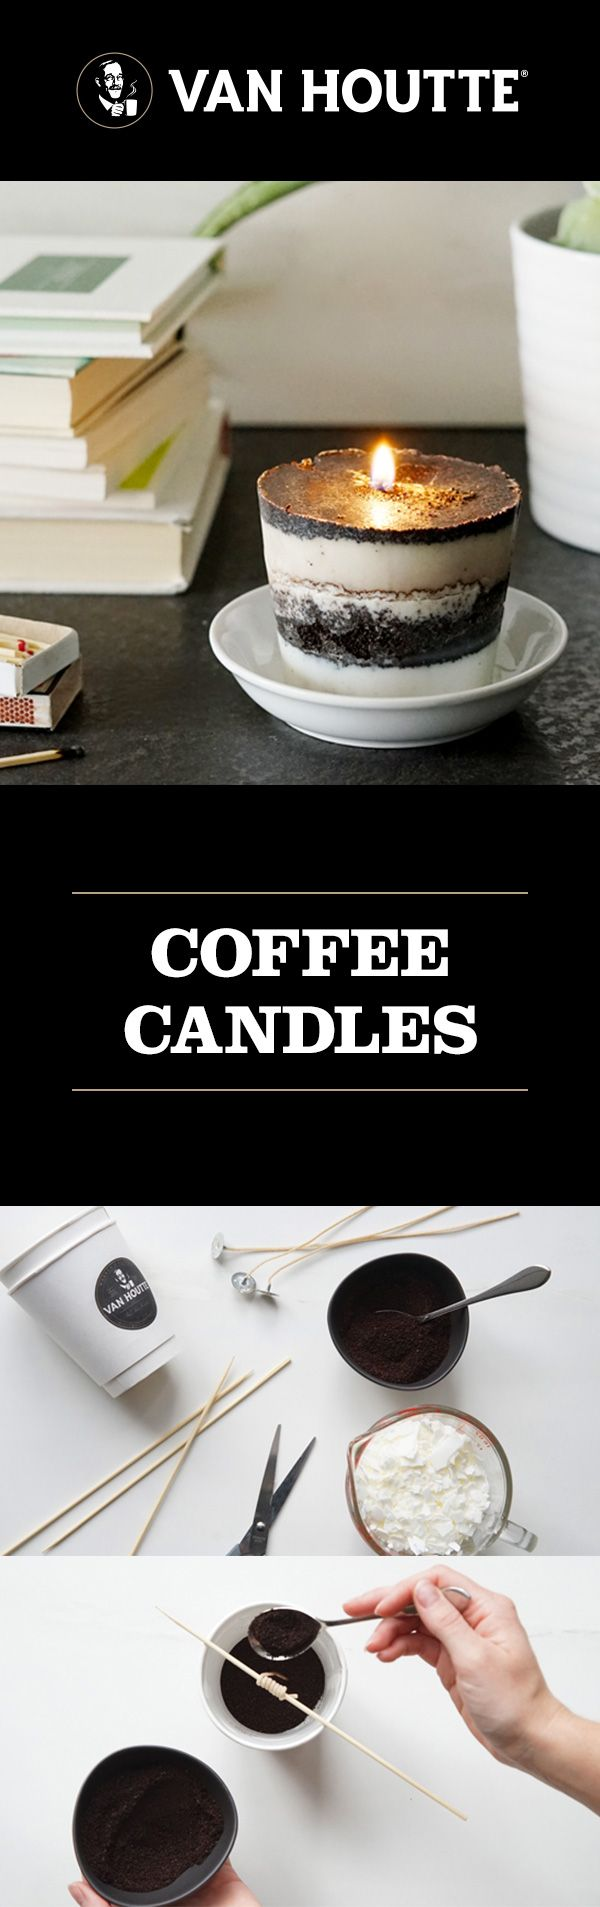 Make something stylish out of used coffee grounds with a fun DIY: homemade coffee-scented candles.